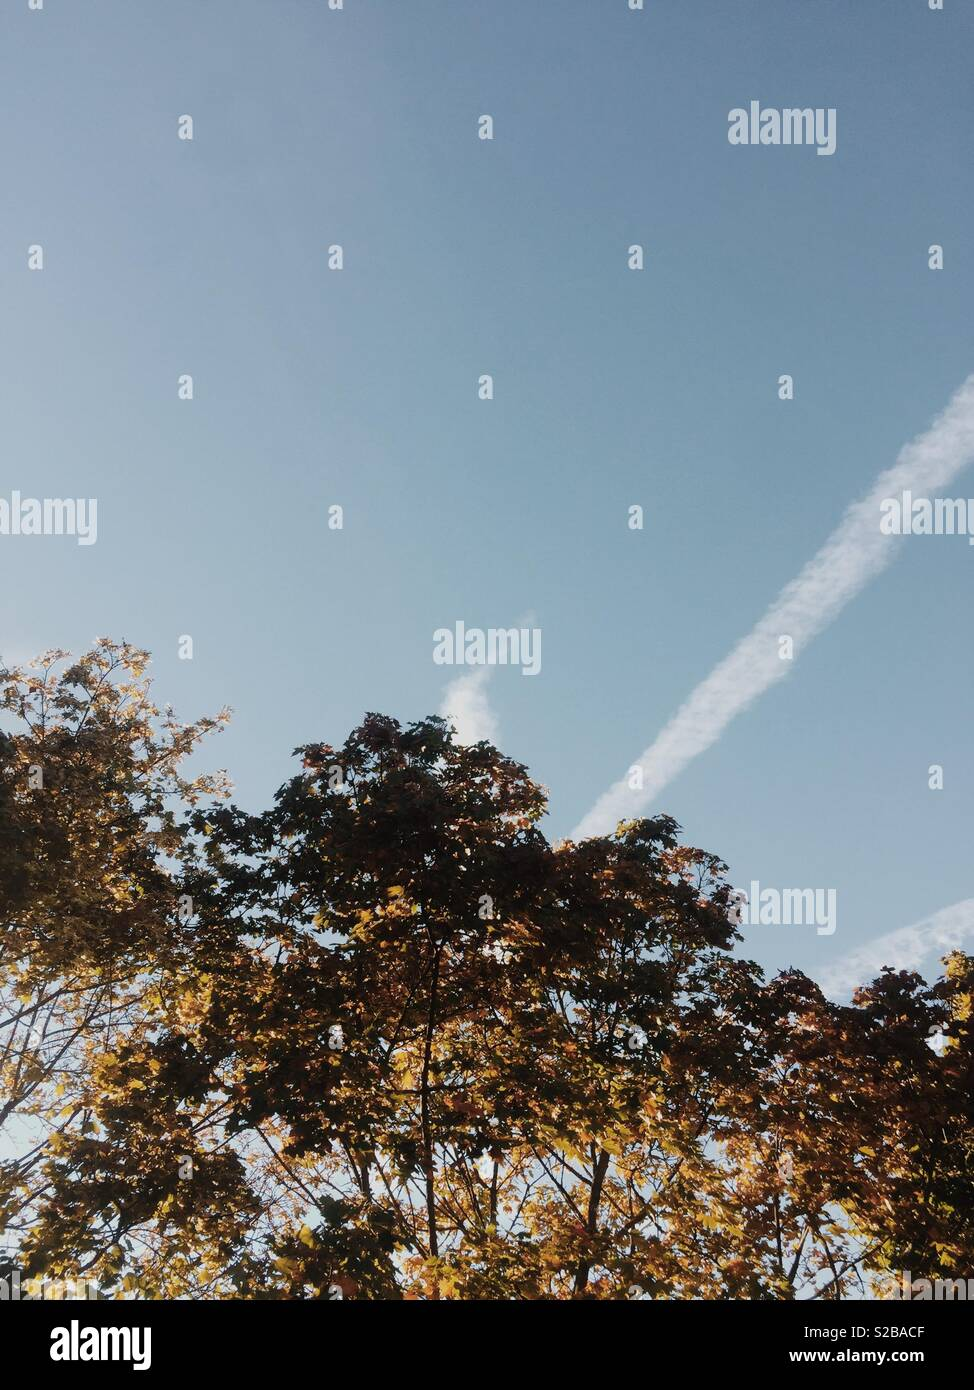 Looking up at autumnal tree in the sun and sky - Stock Image